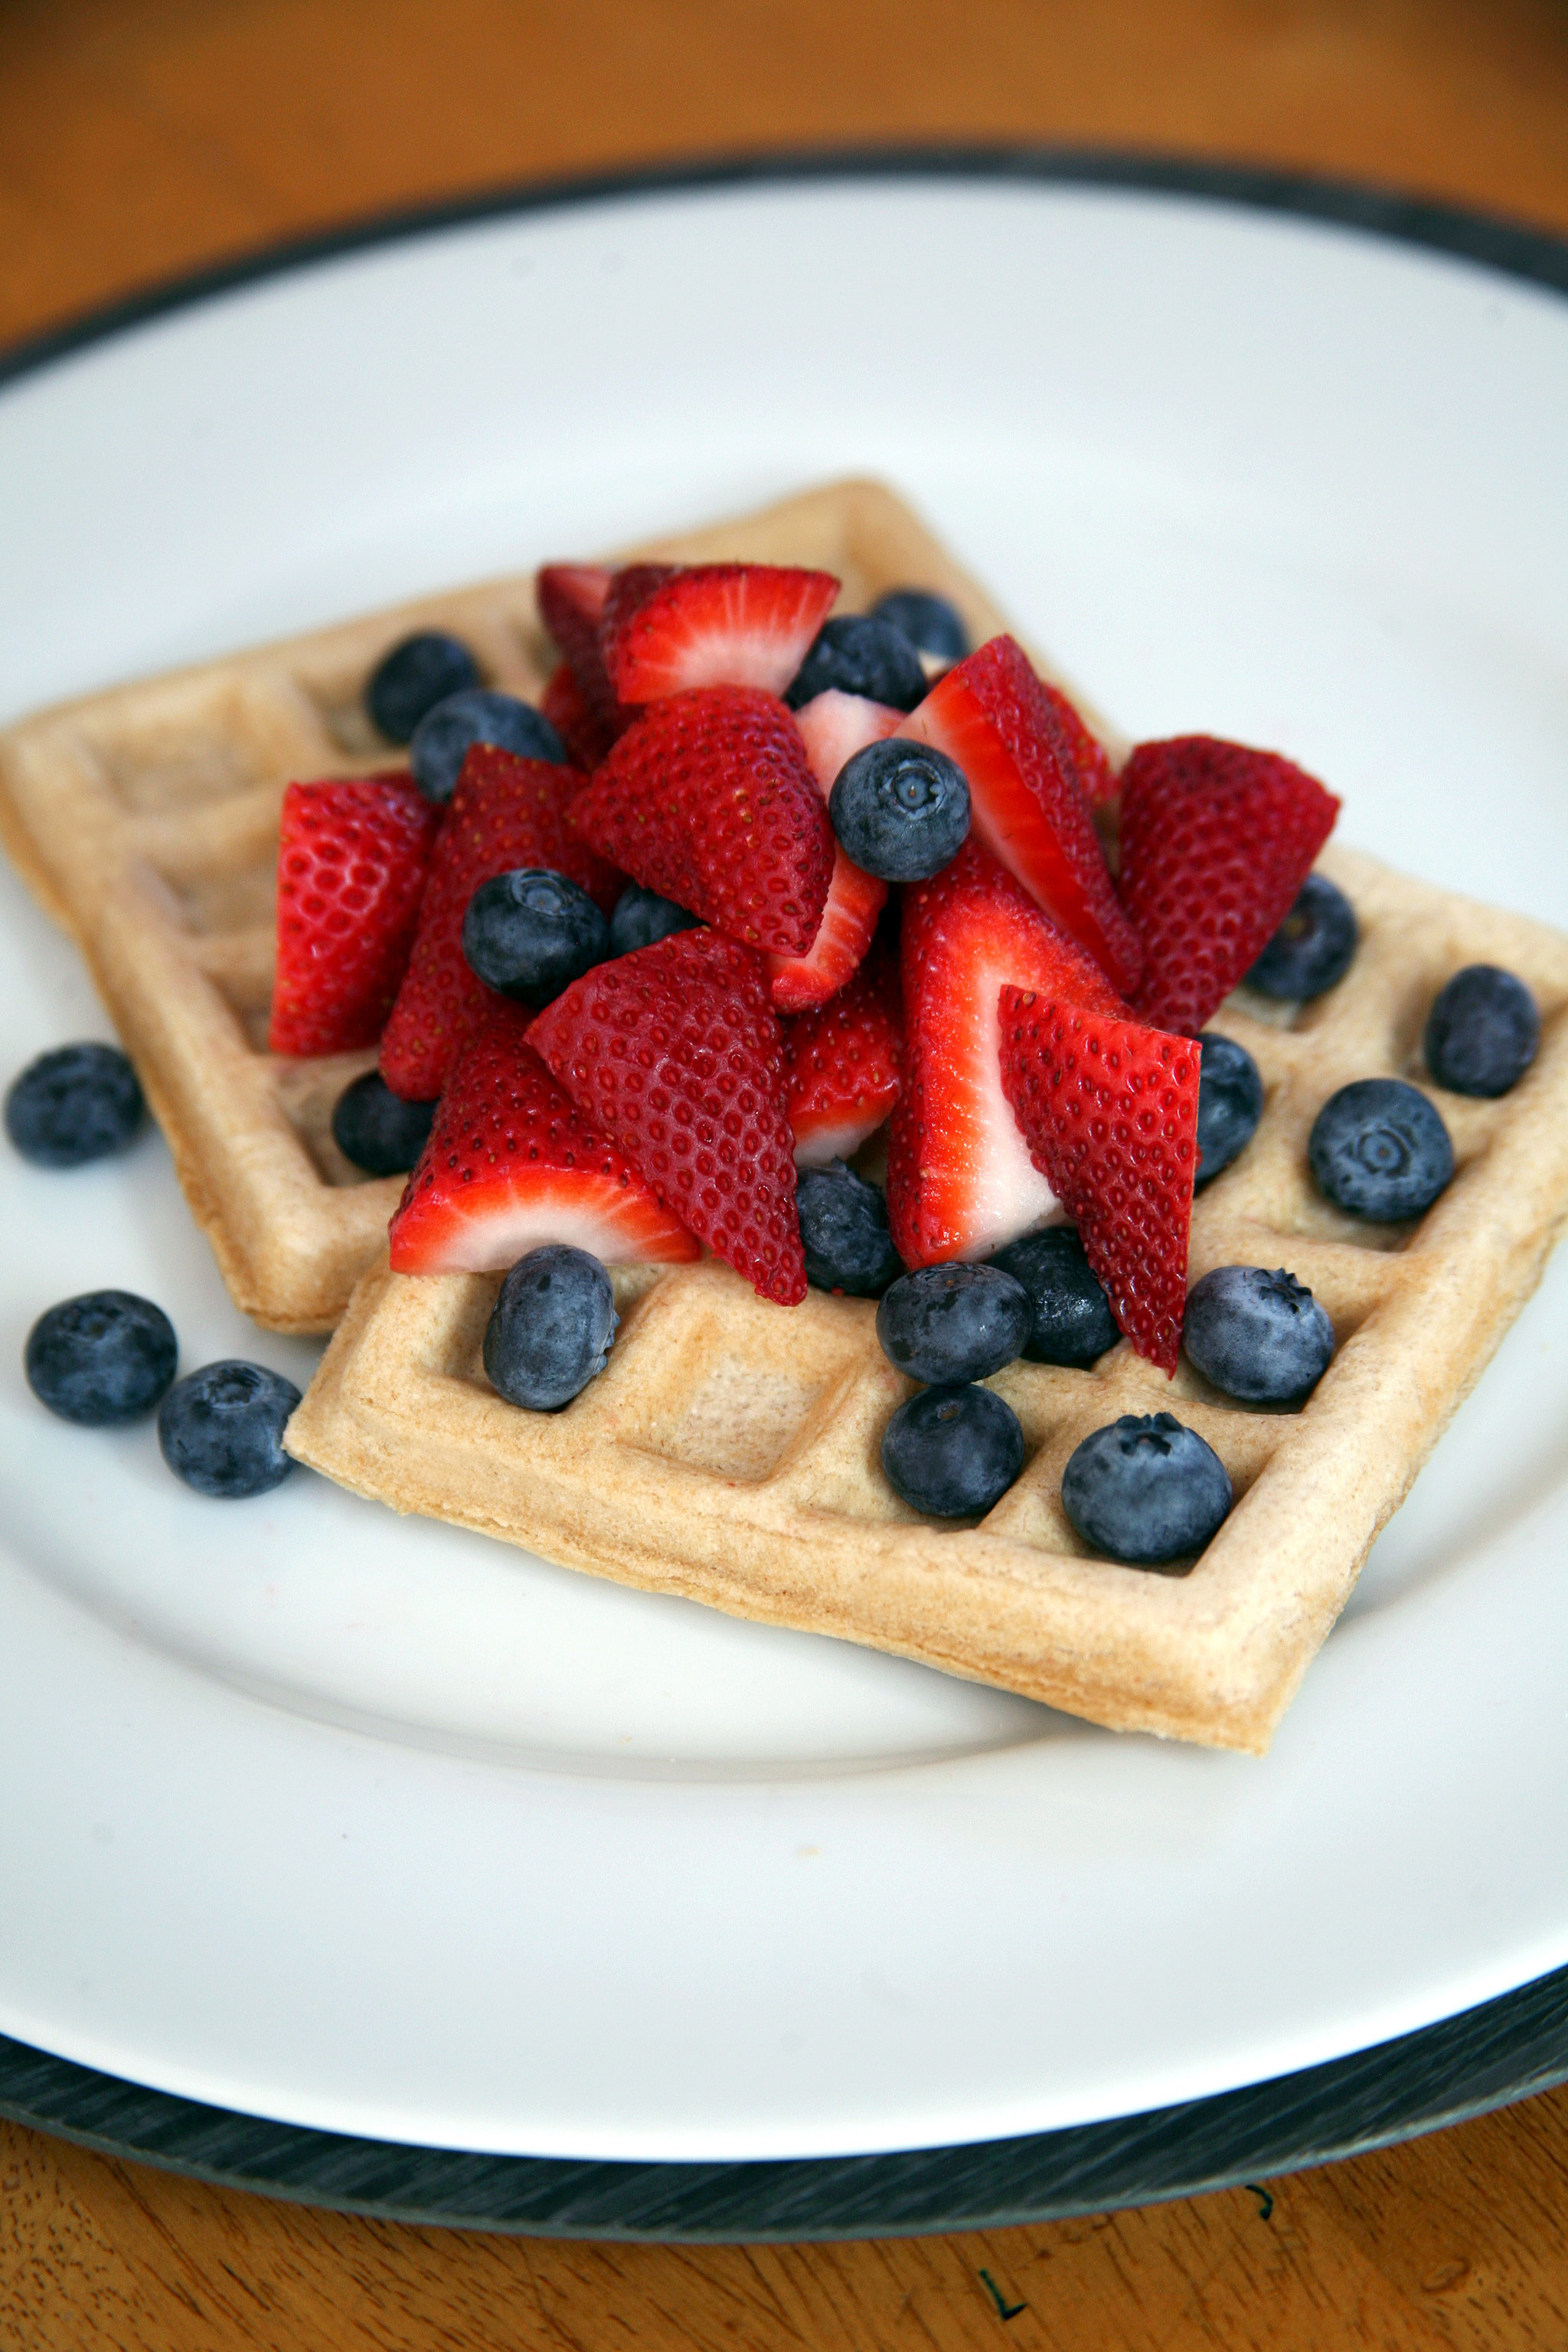 Hot Off the Iron! Healthy Vegan Waffles